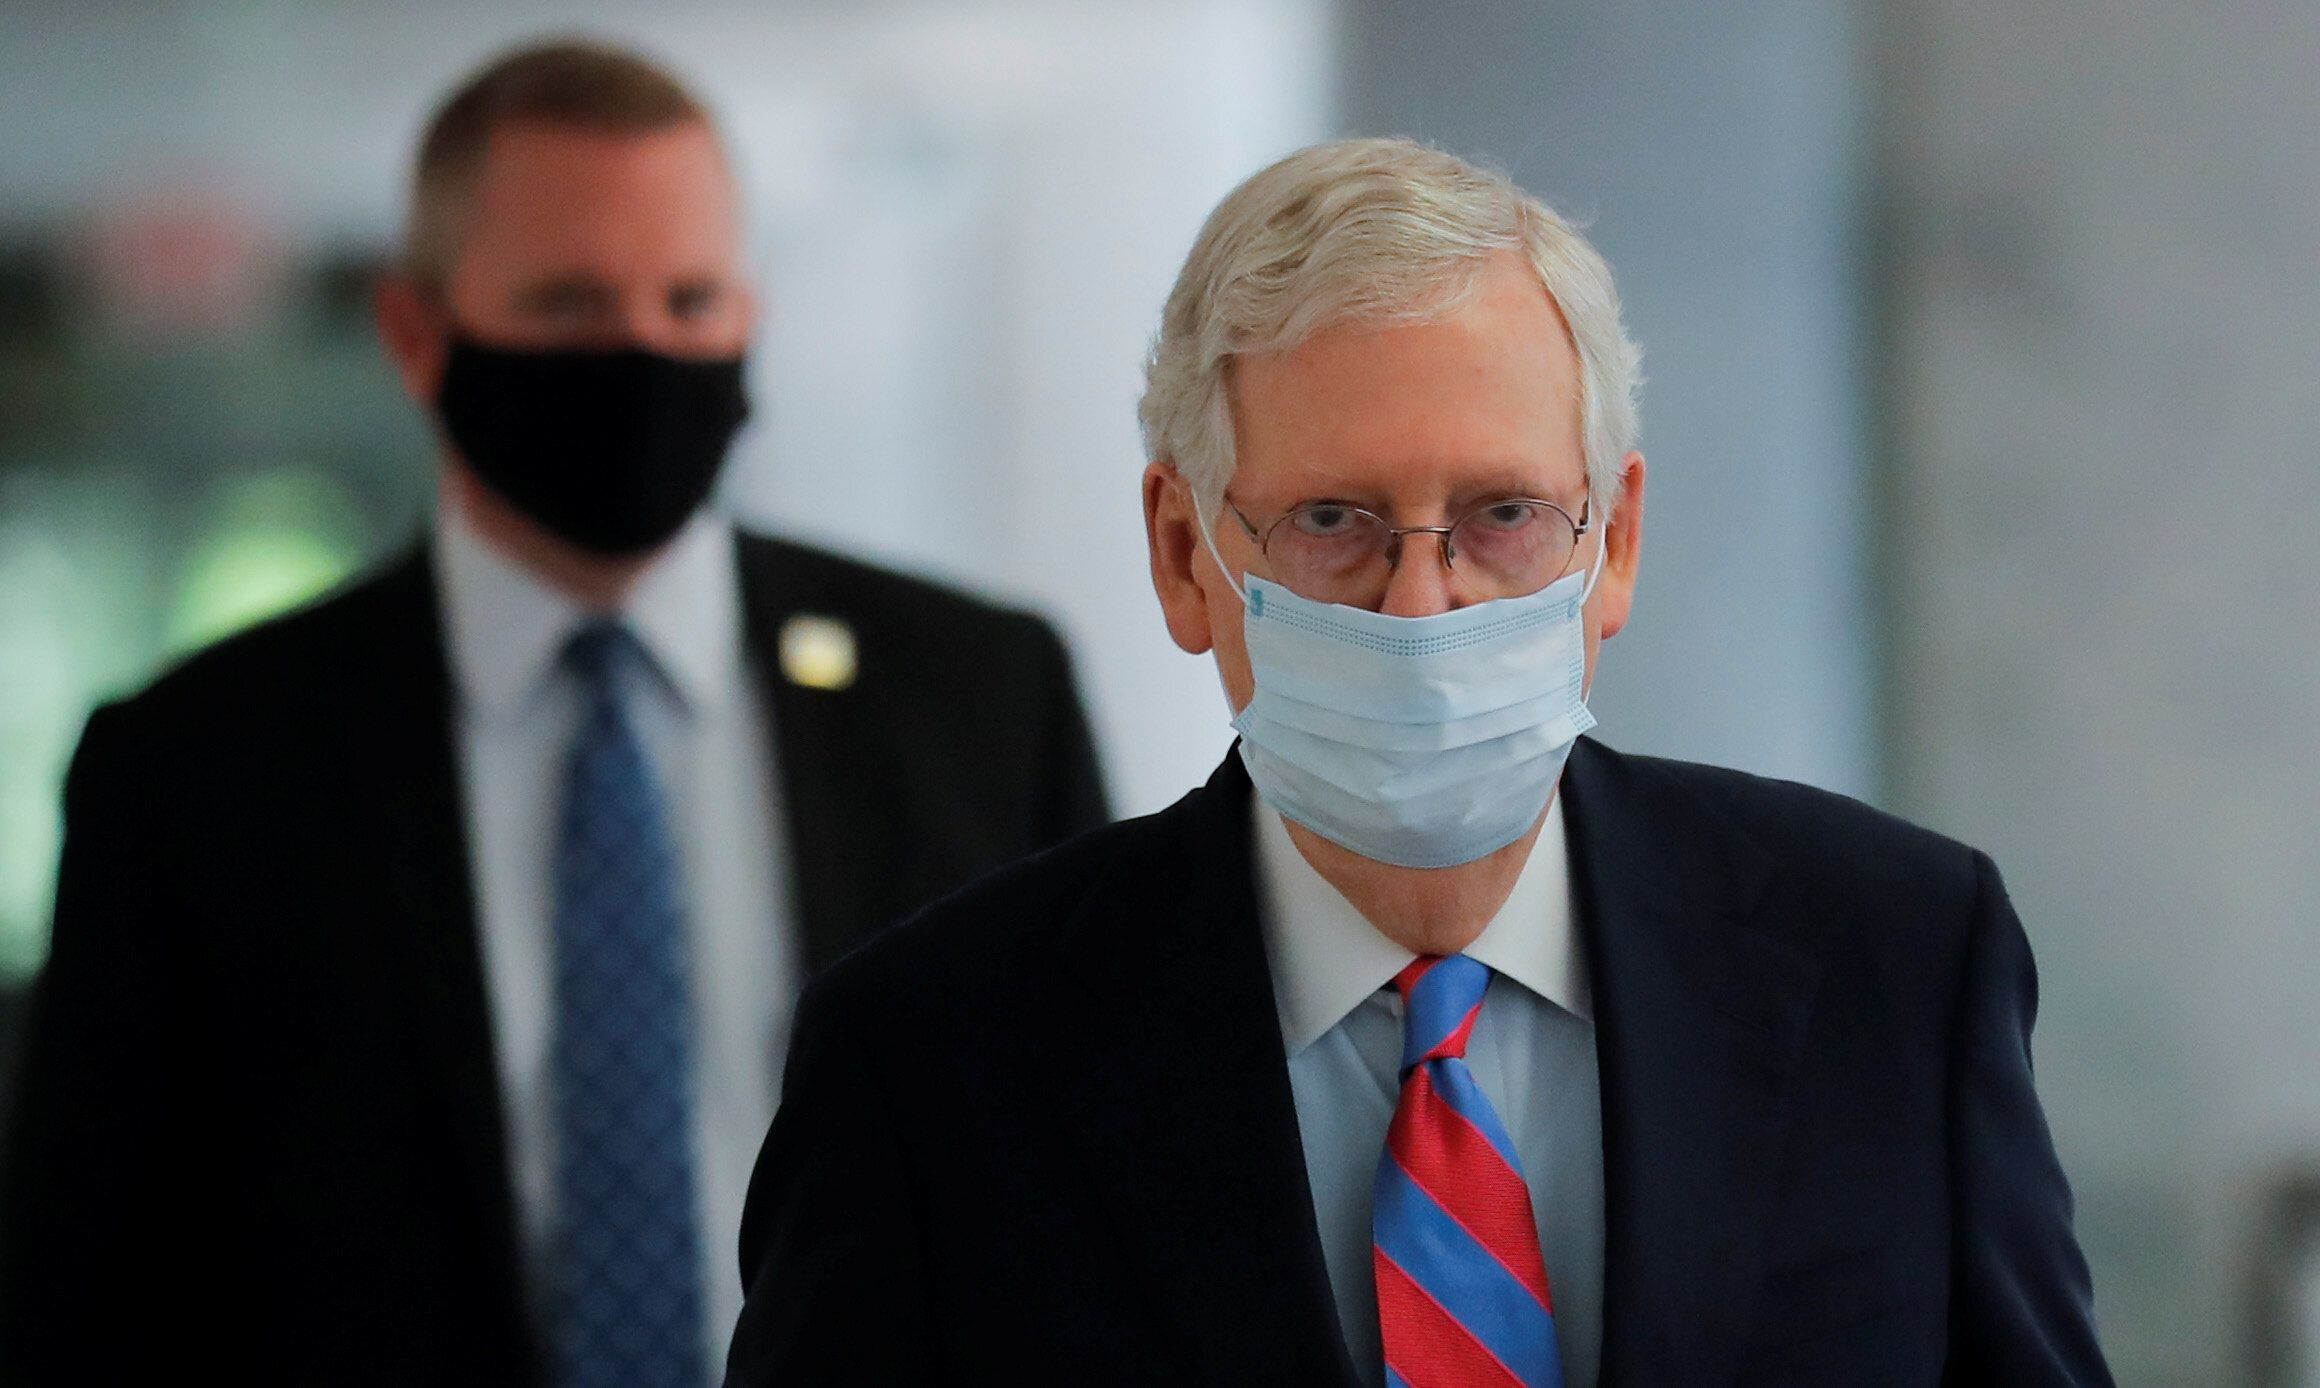 Senate Majority Leader Mitch McConnell (R-Ky.) wears a protective face mask as he walks down a hallway of the Hart Senate Off